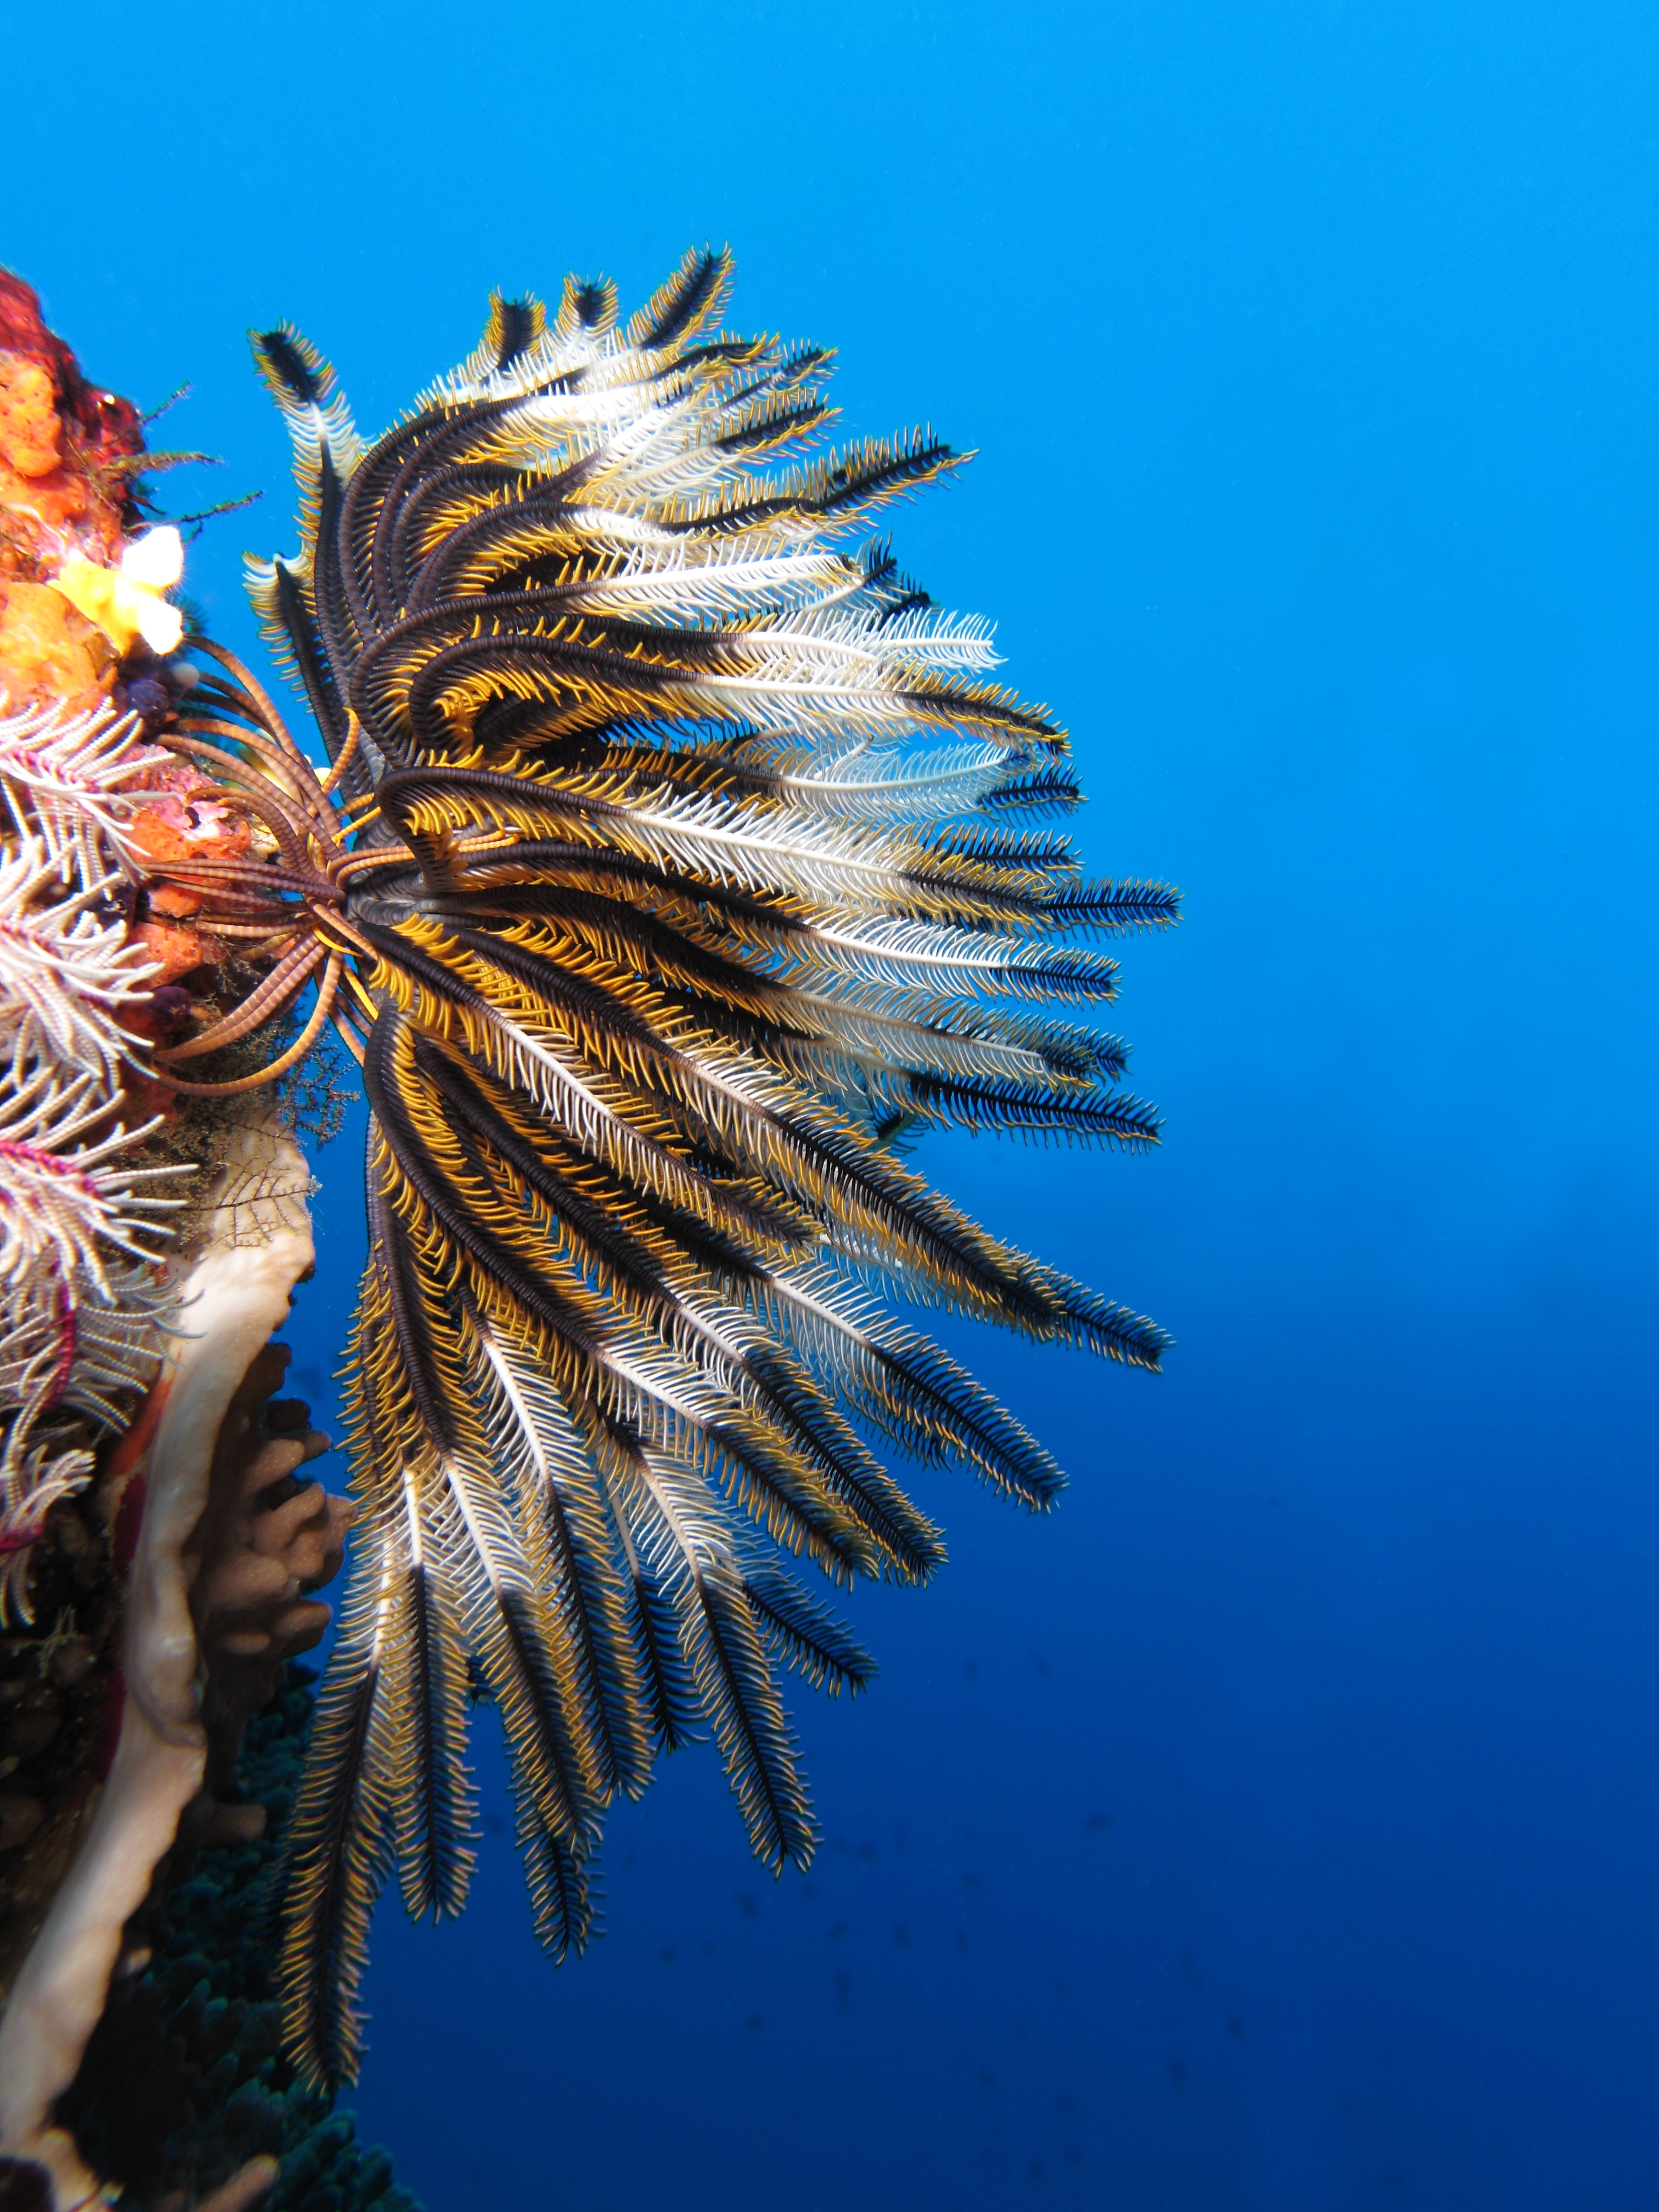 Crinoid_on_the_reef_of_Batu_Moncho_Island.jpeg